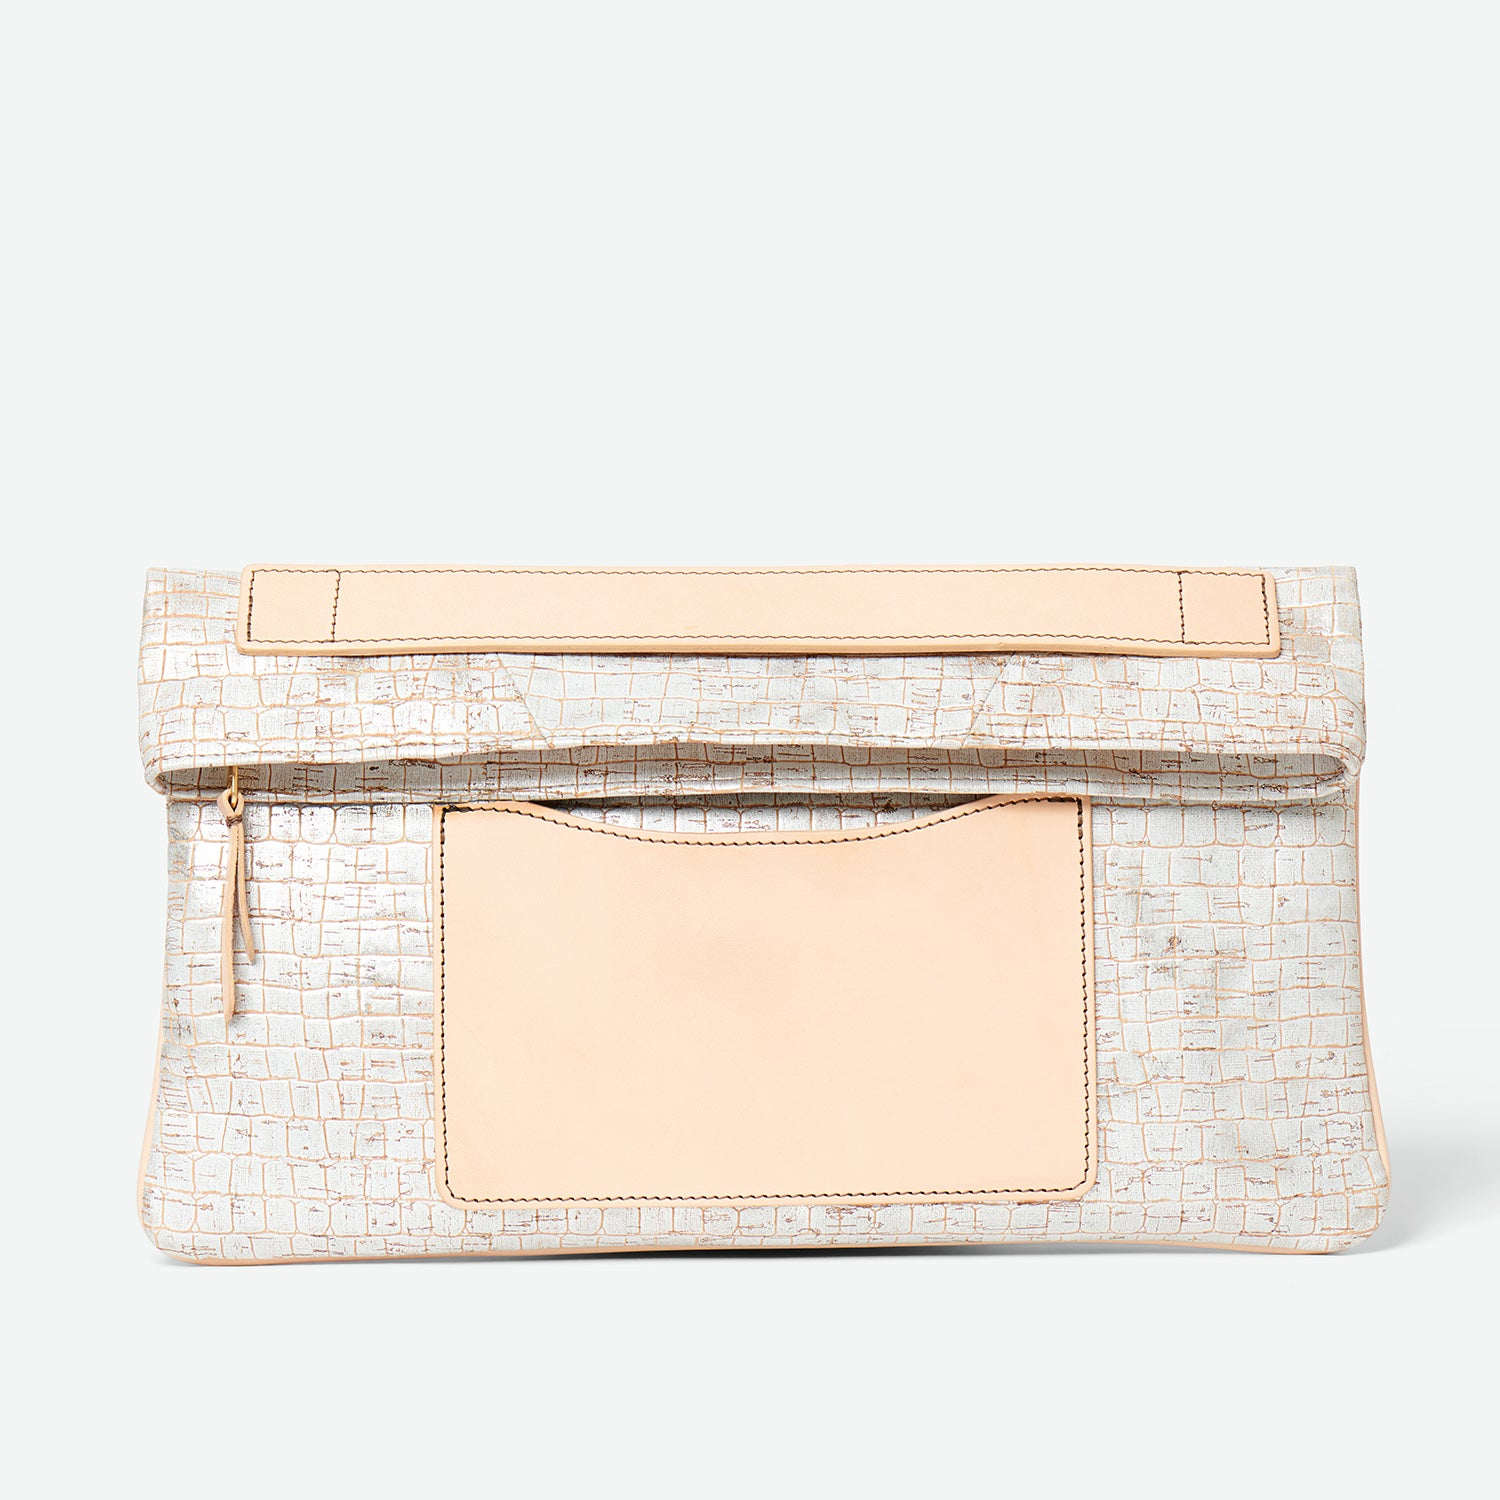 Melvia cork clutch - Paula Parisotto - Silver cork